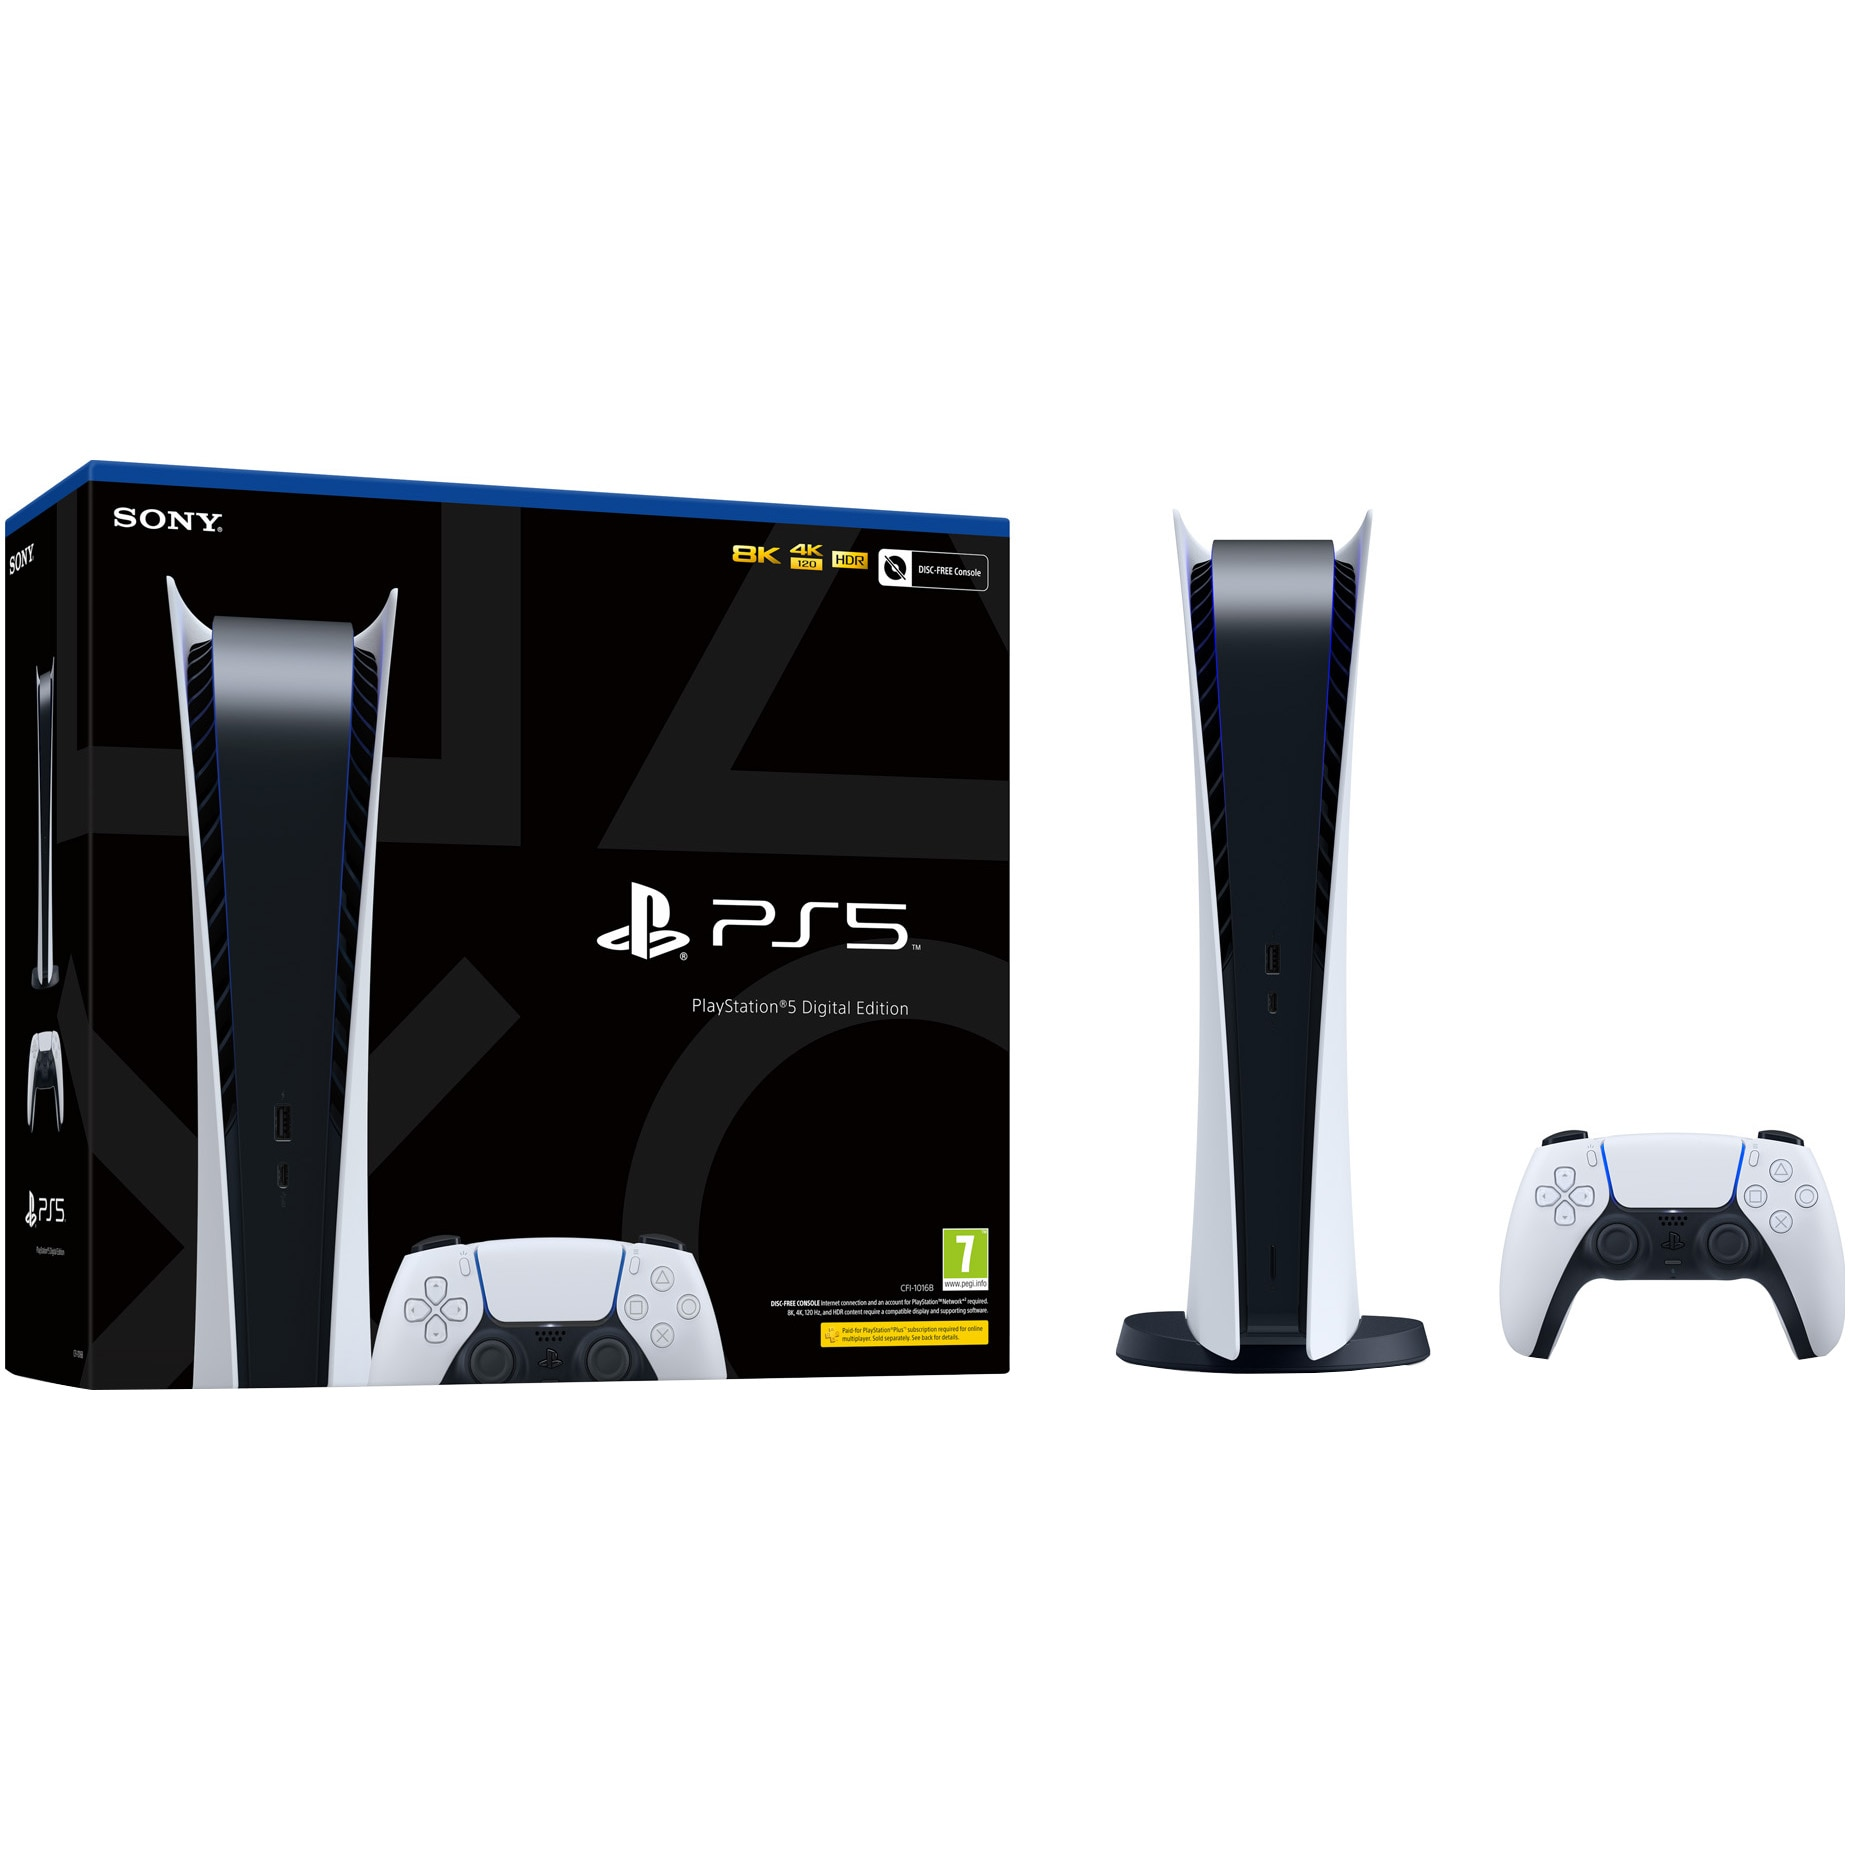 Consola PlayStation 5 Digital Edition - eMAG.ro